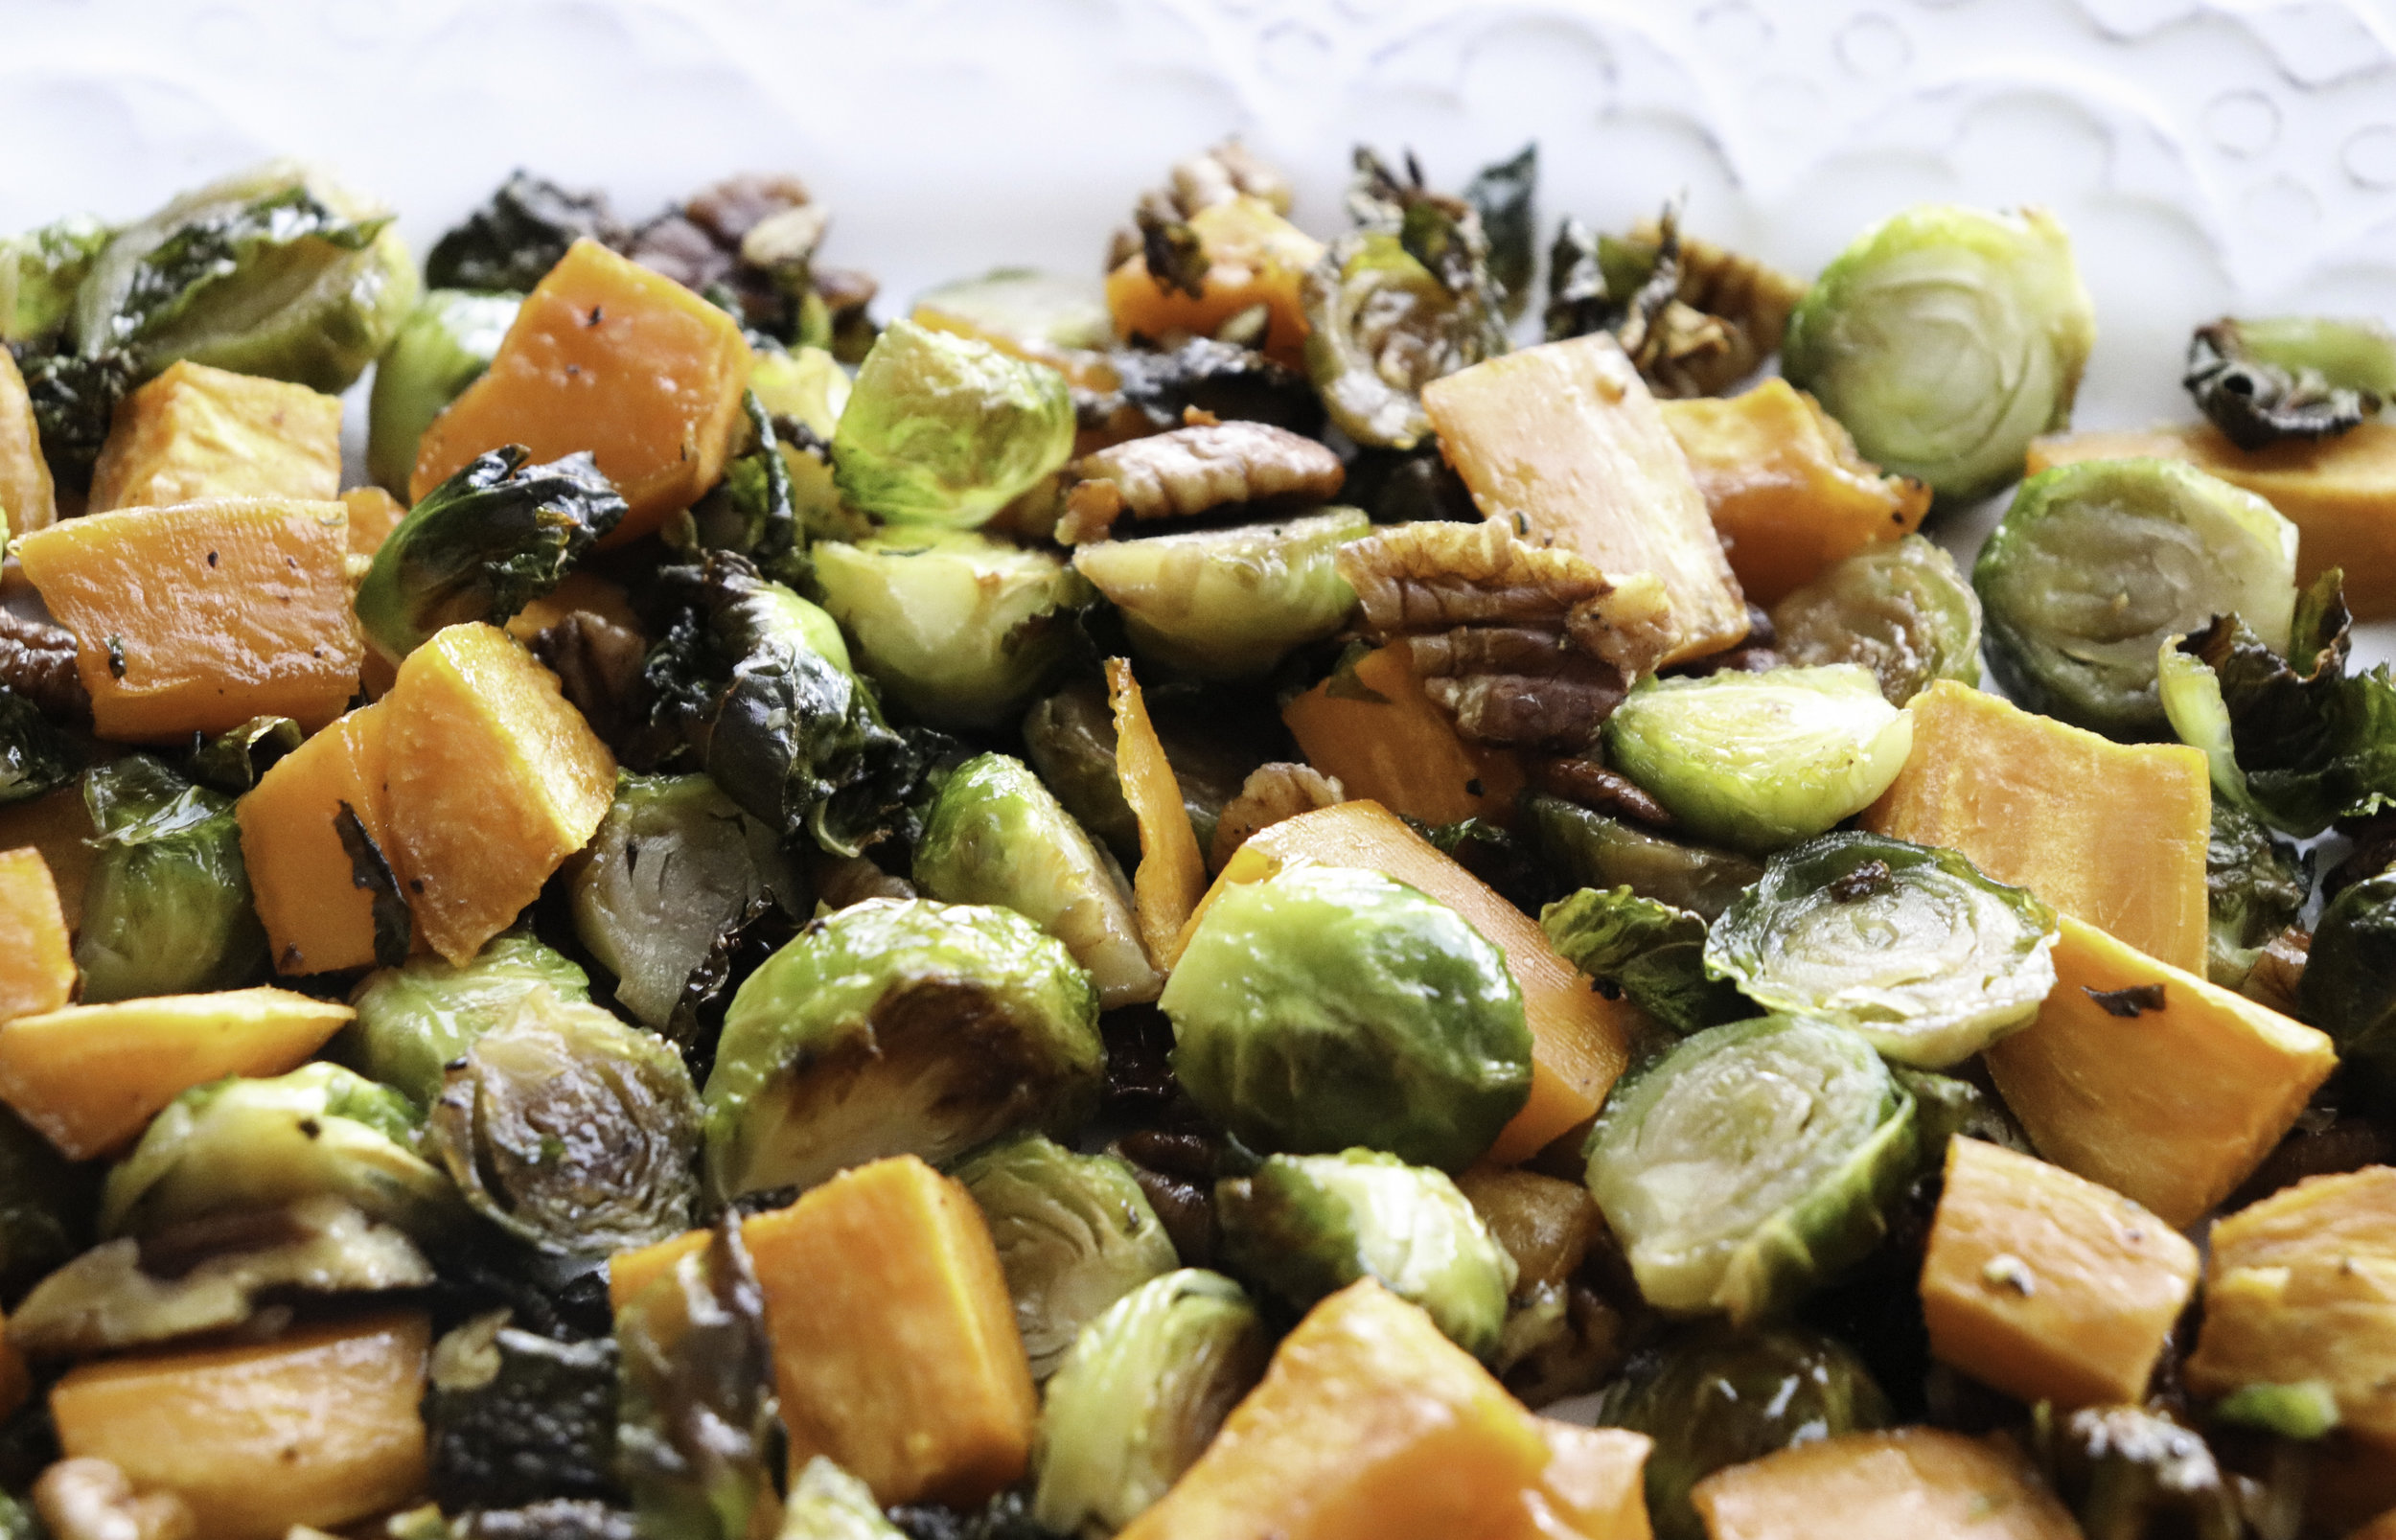 Pecan Pie Glazed Sweet Potatoes and Brussels Sprouts - love the little crispy leaves!